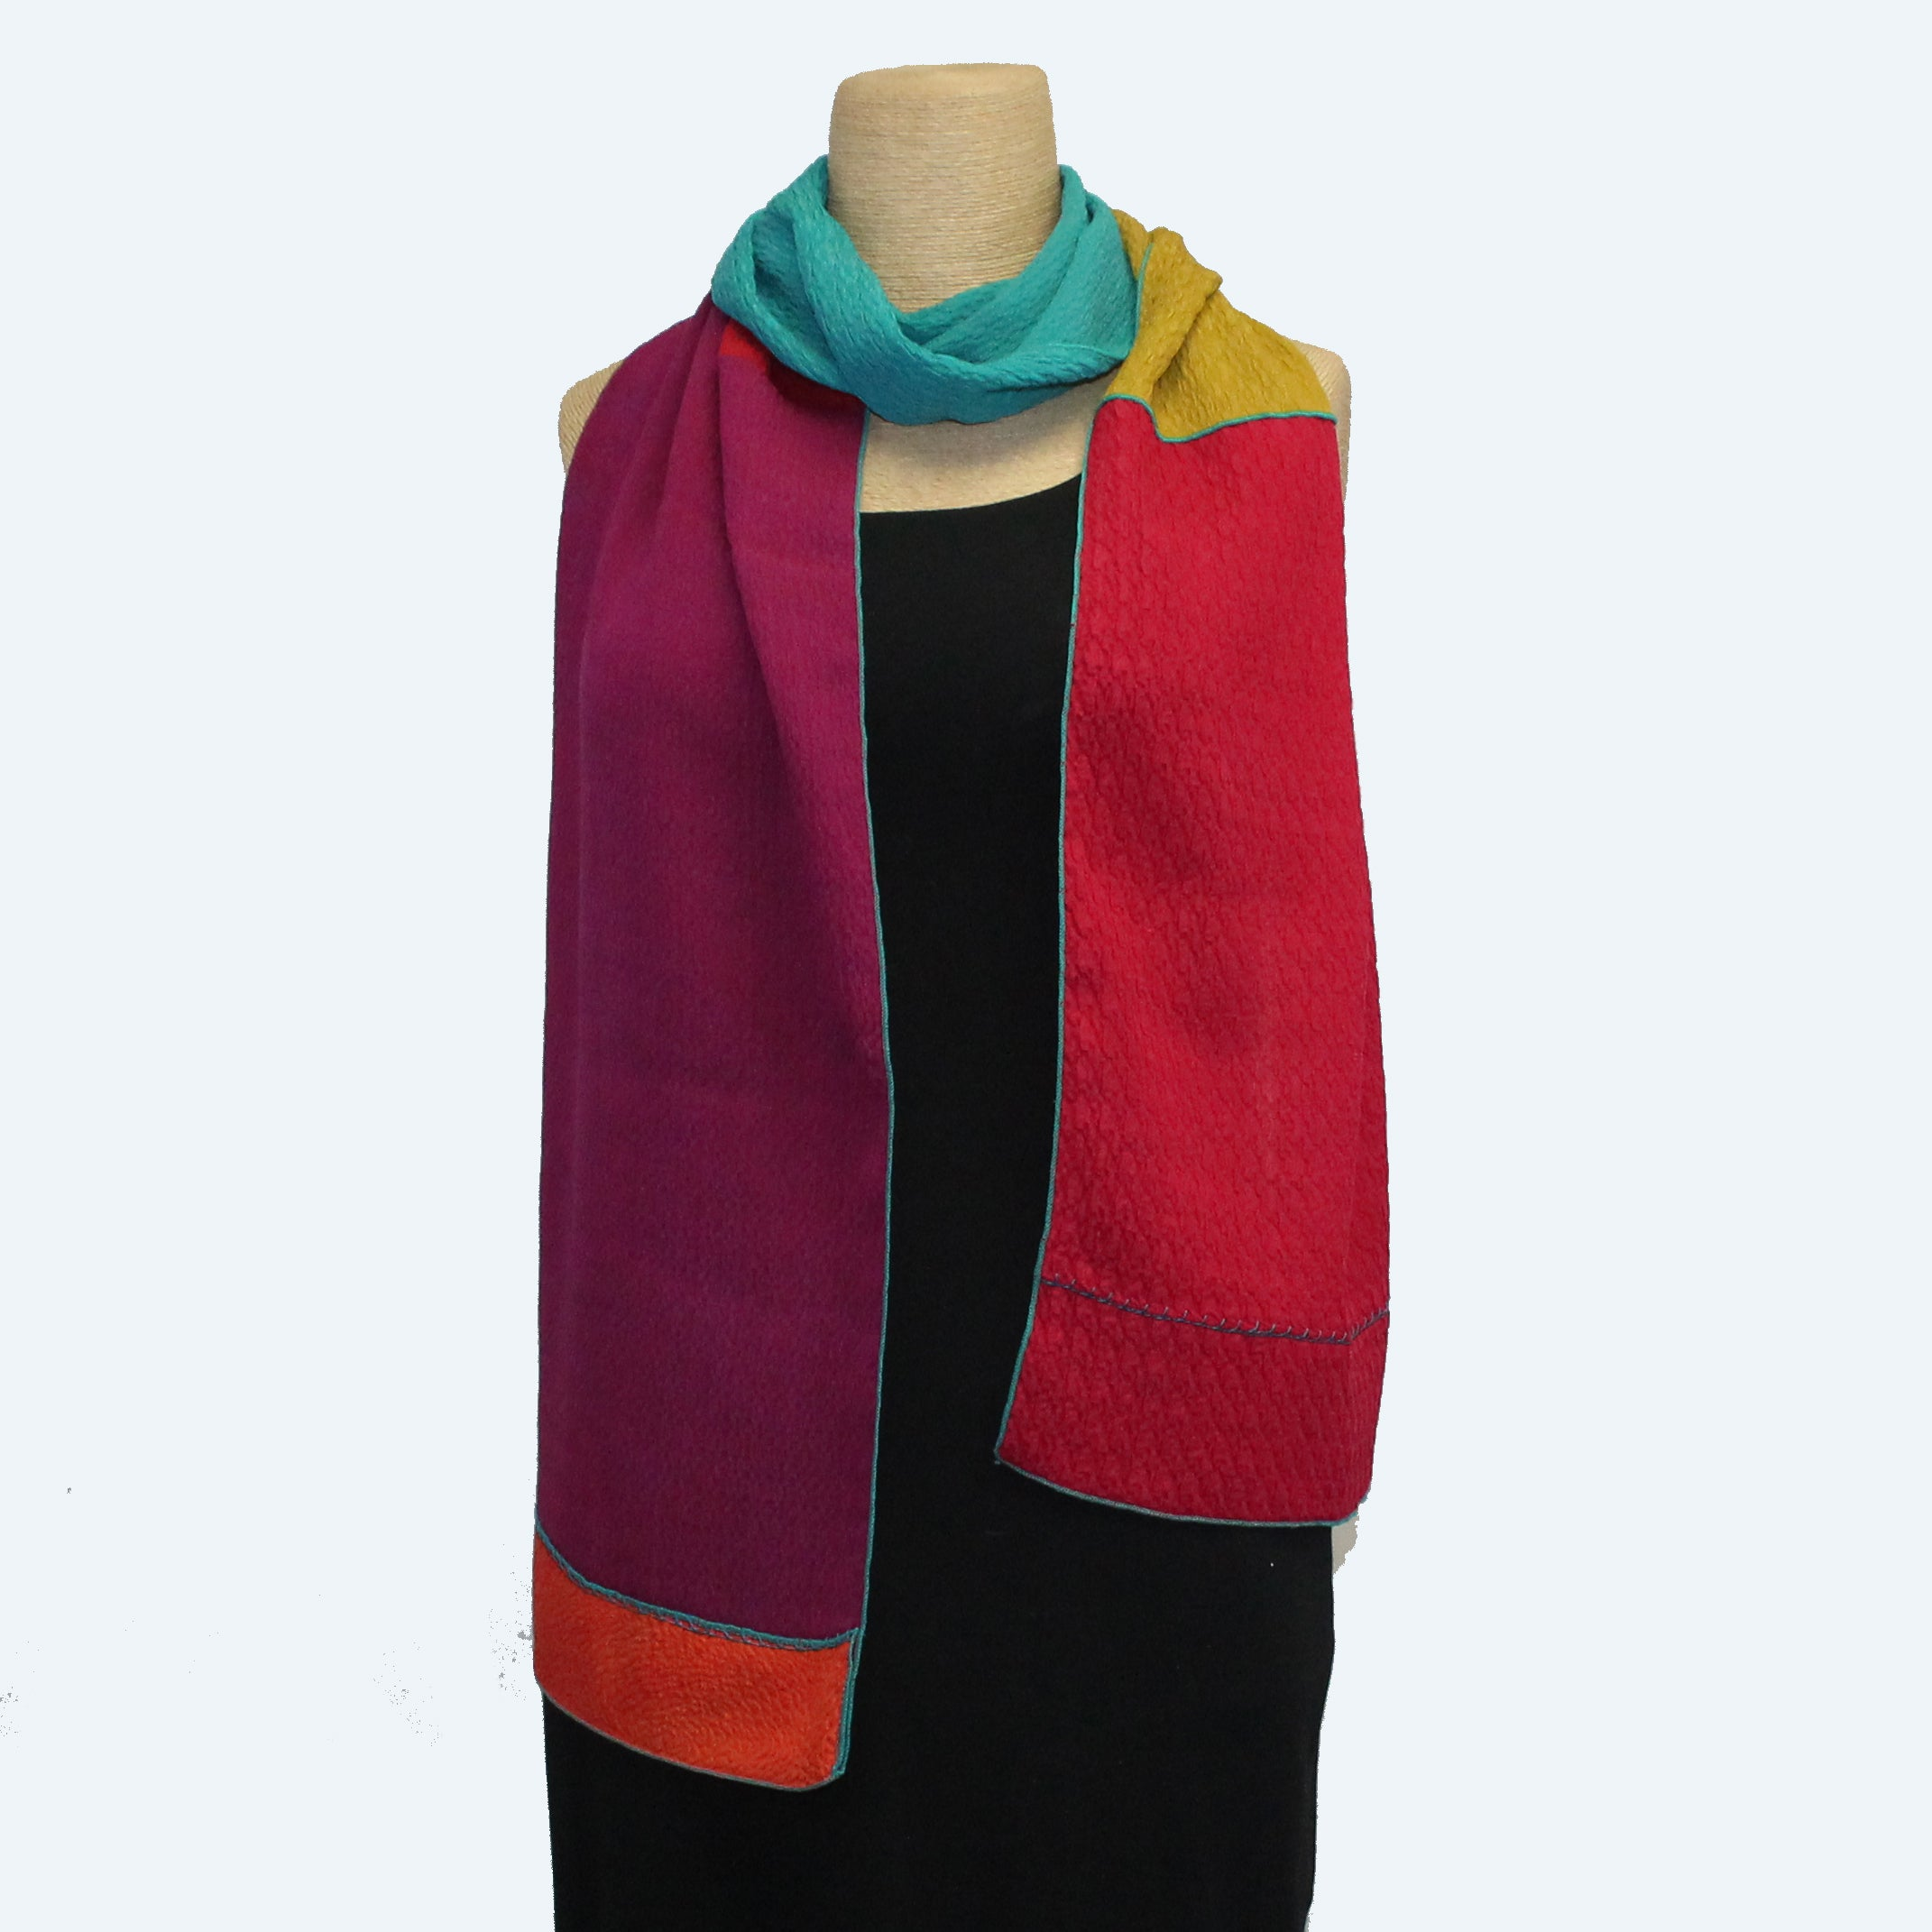 Judith Bird Scarf, Stretchy Silk, Bright Colors II